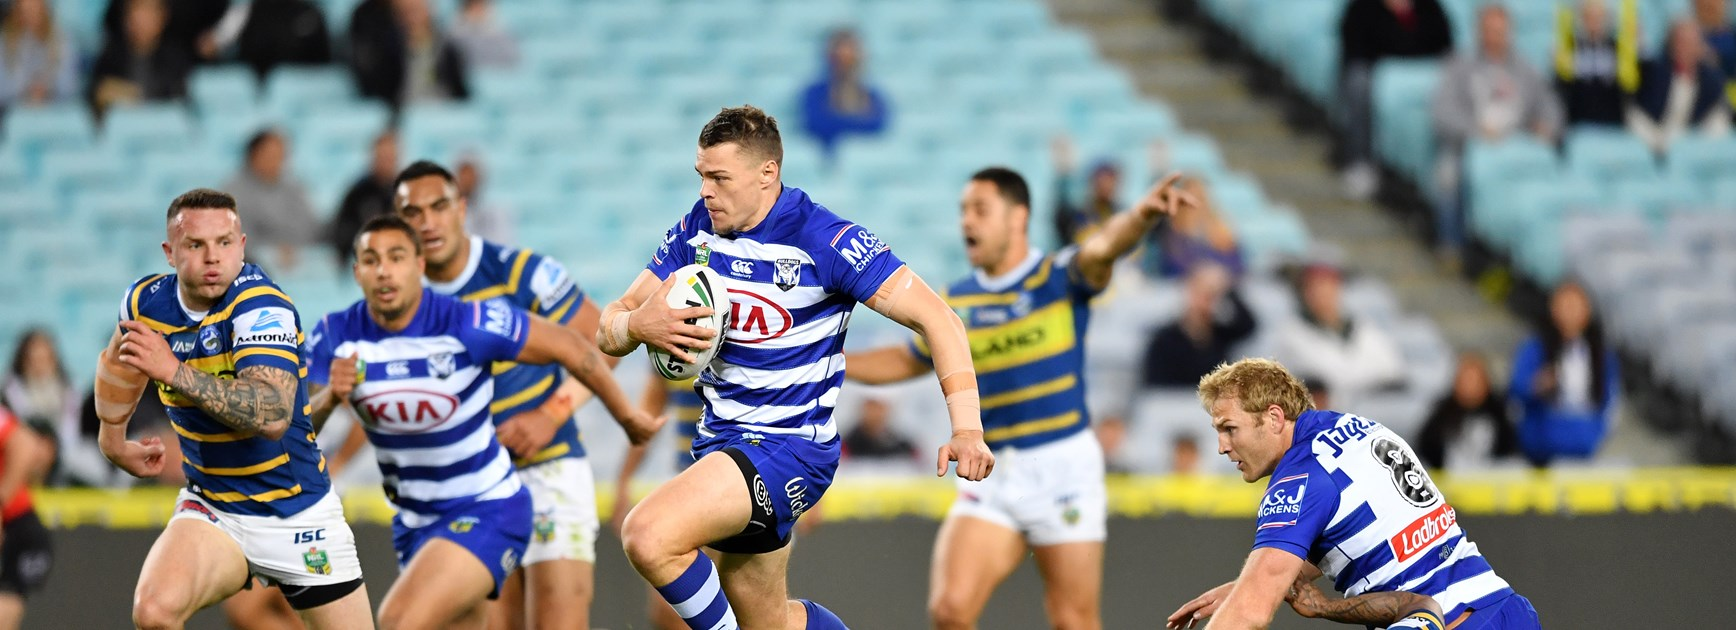 Best attacking centres of 2018: Bulldog edges out Roosters, Raiders stars